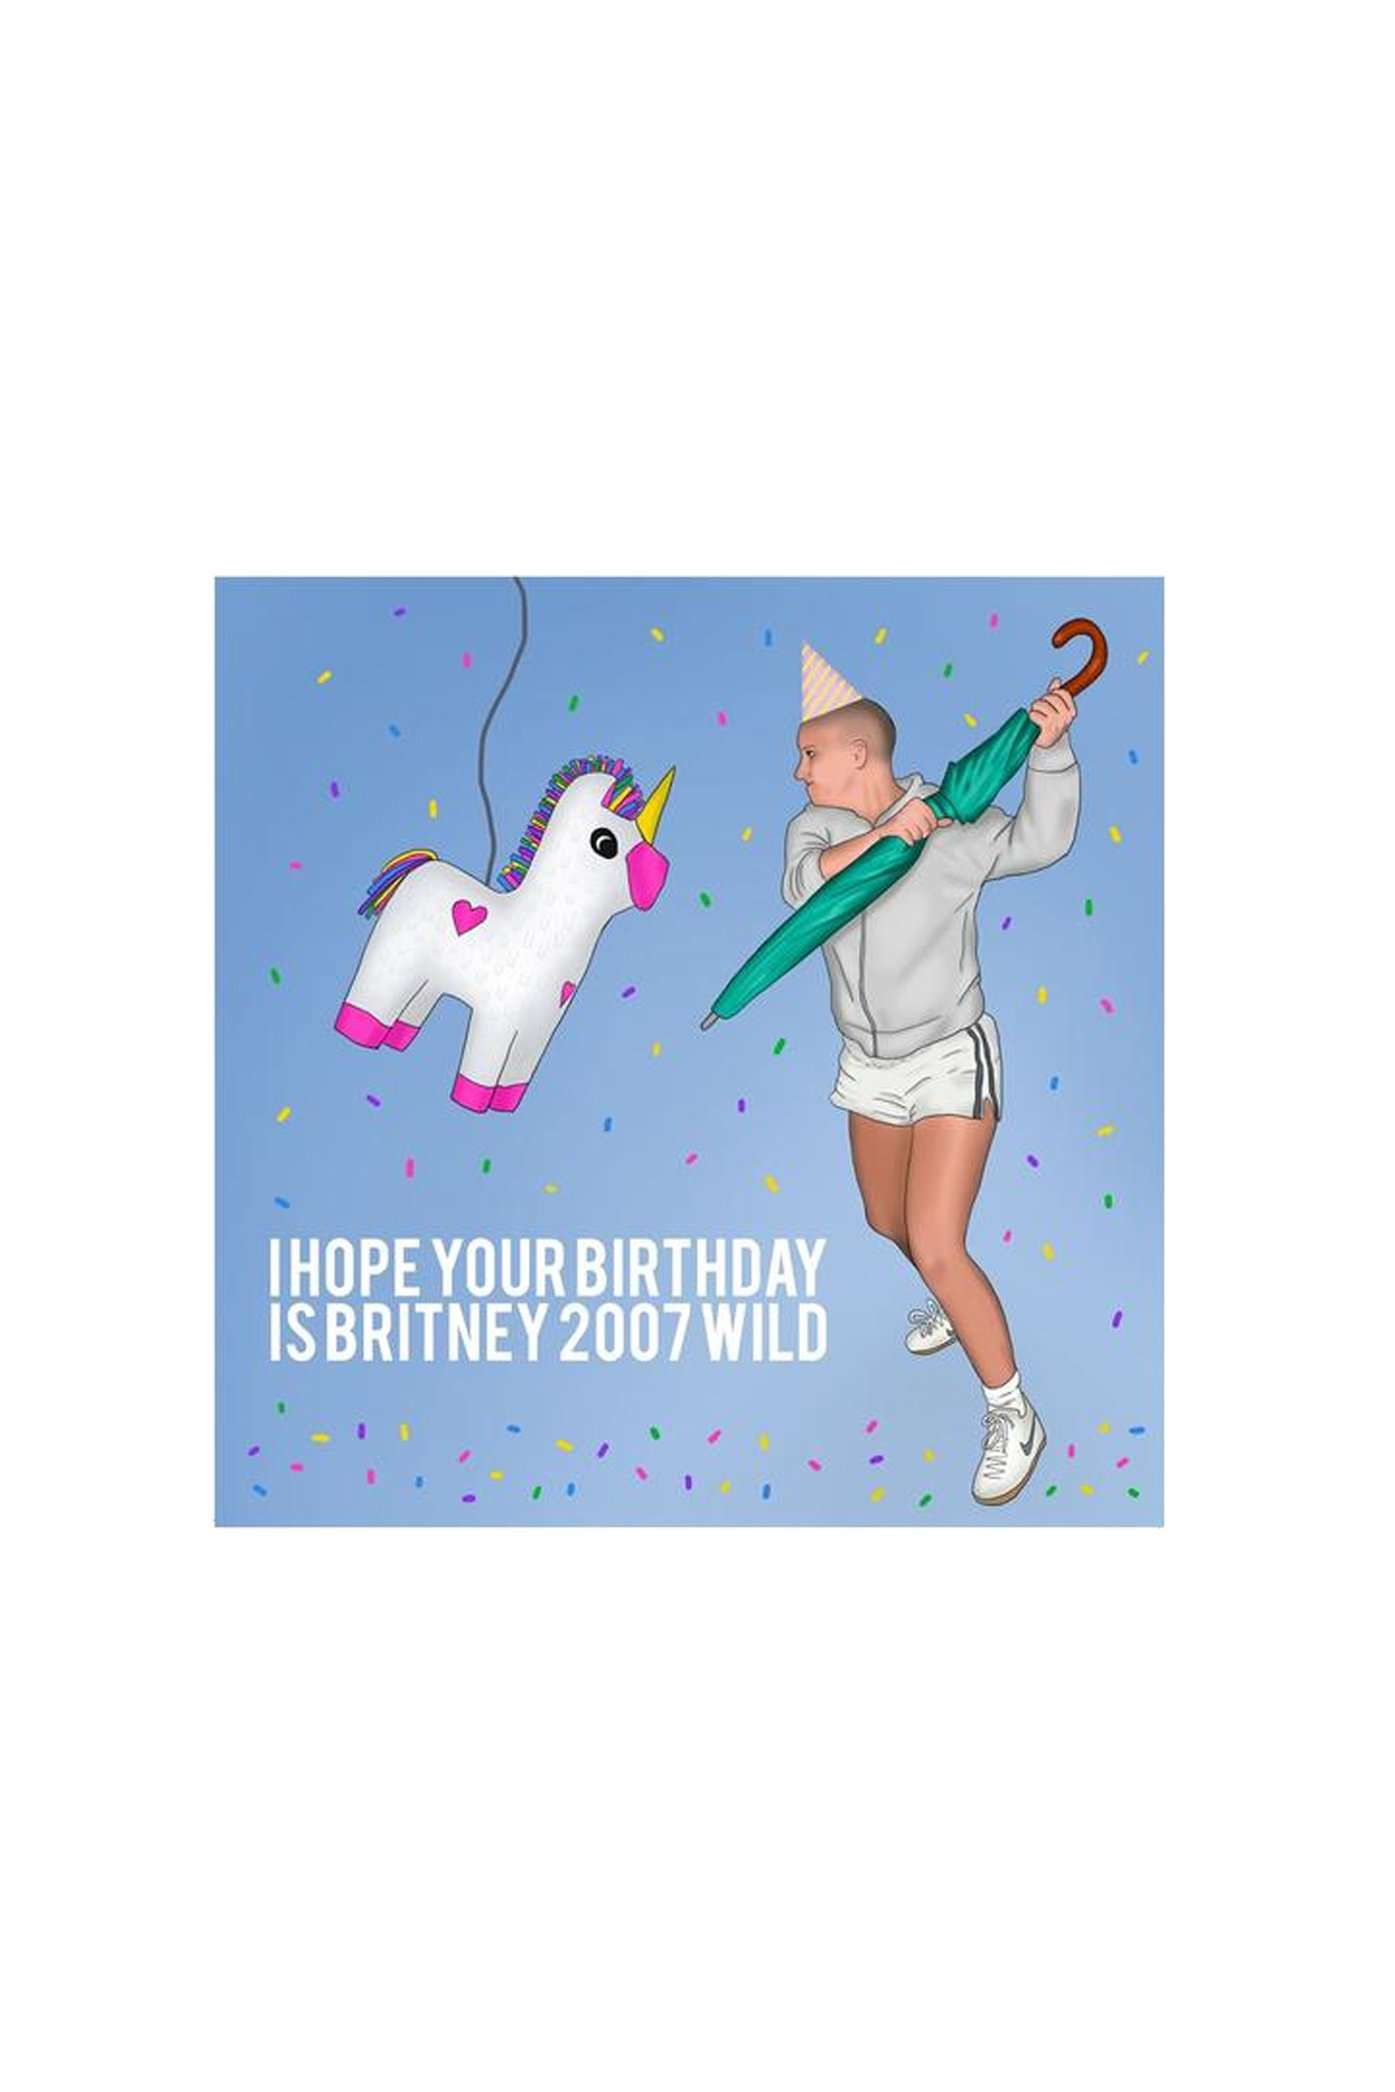 Central 23 Britney Spears Birthday Card